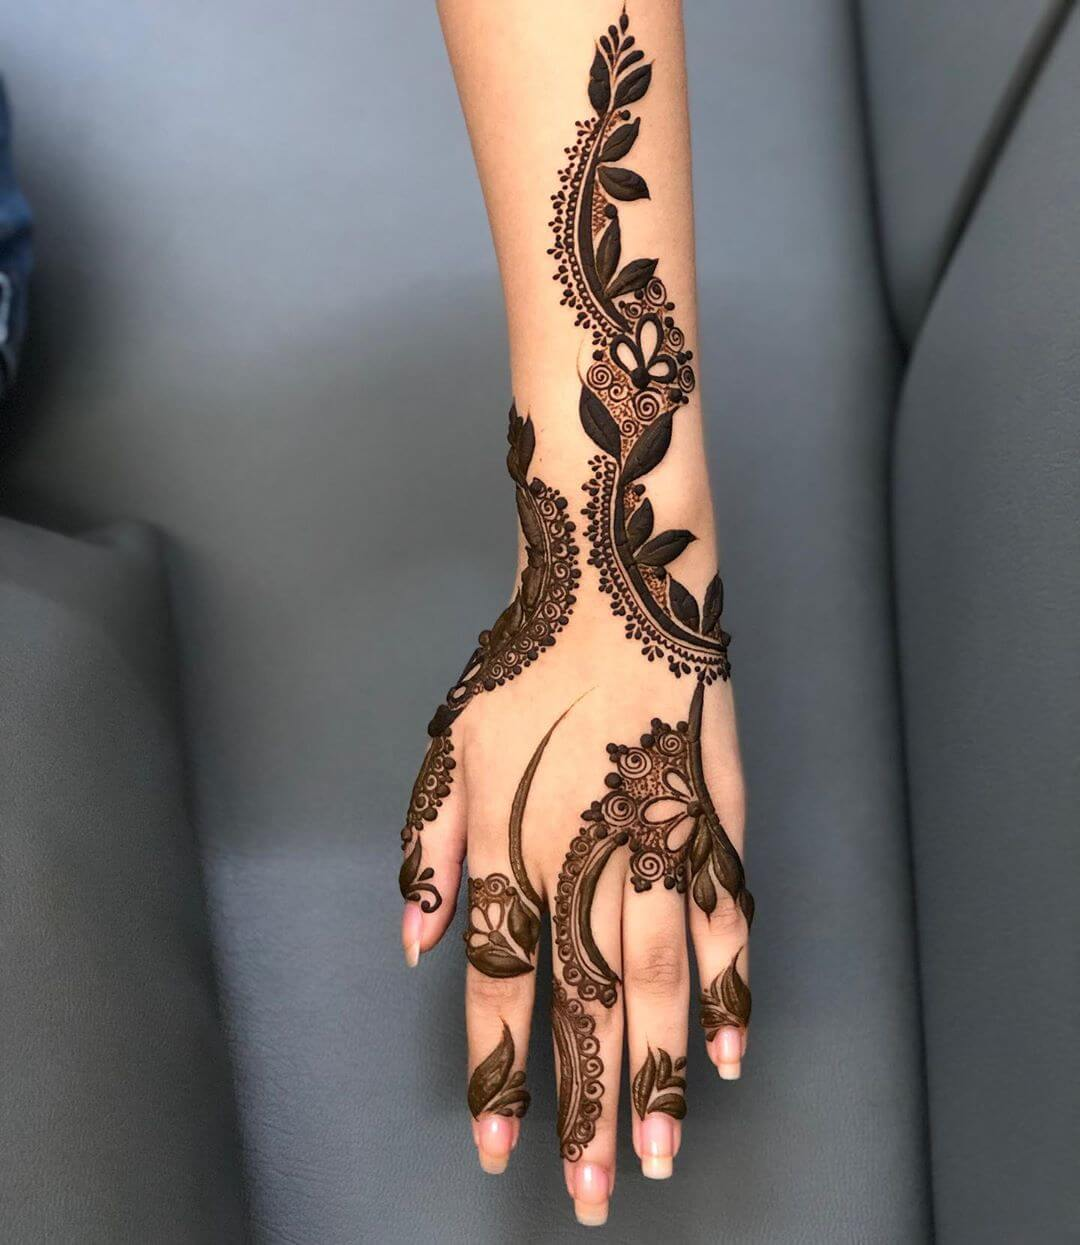 Swirling it around mehndi designs for back hands